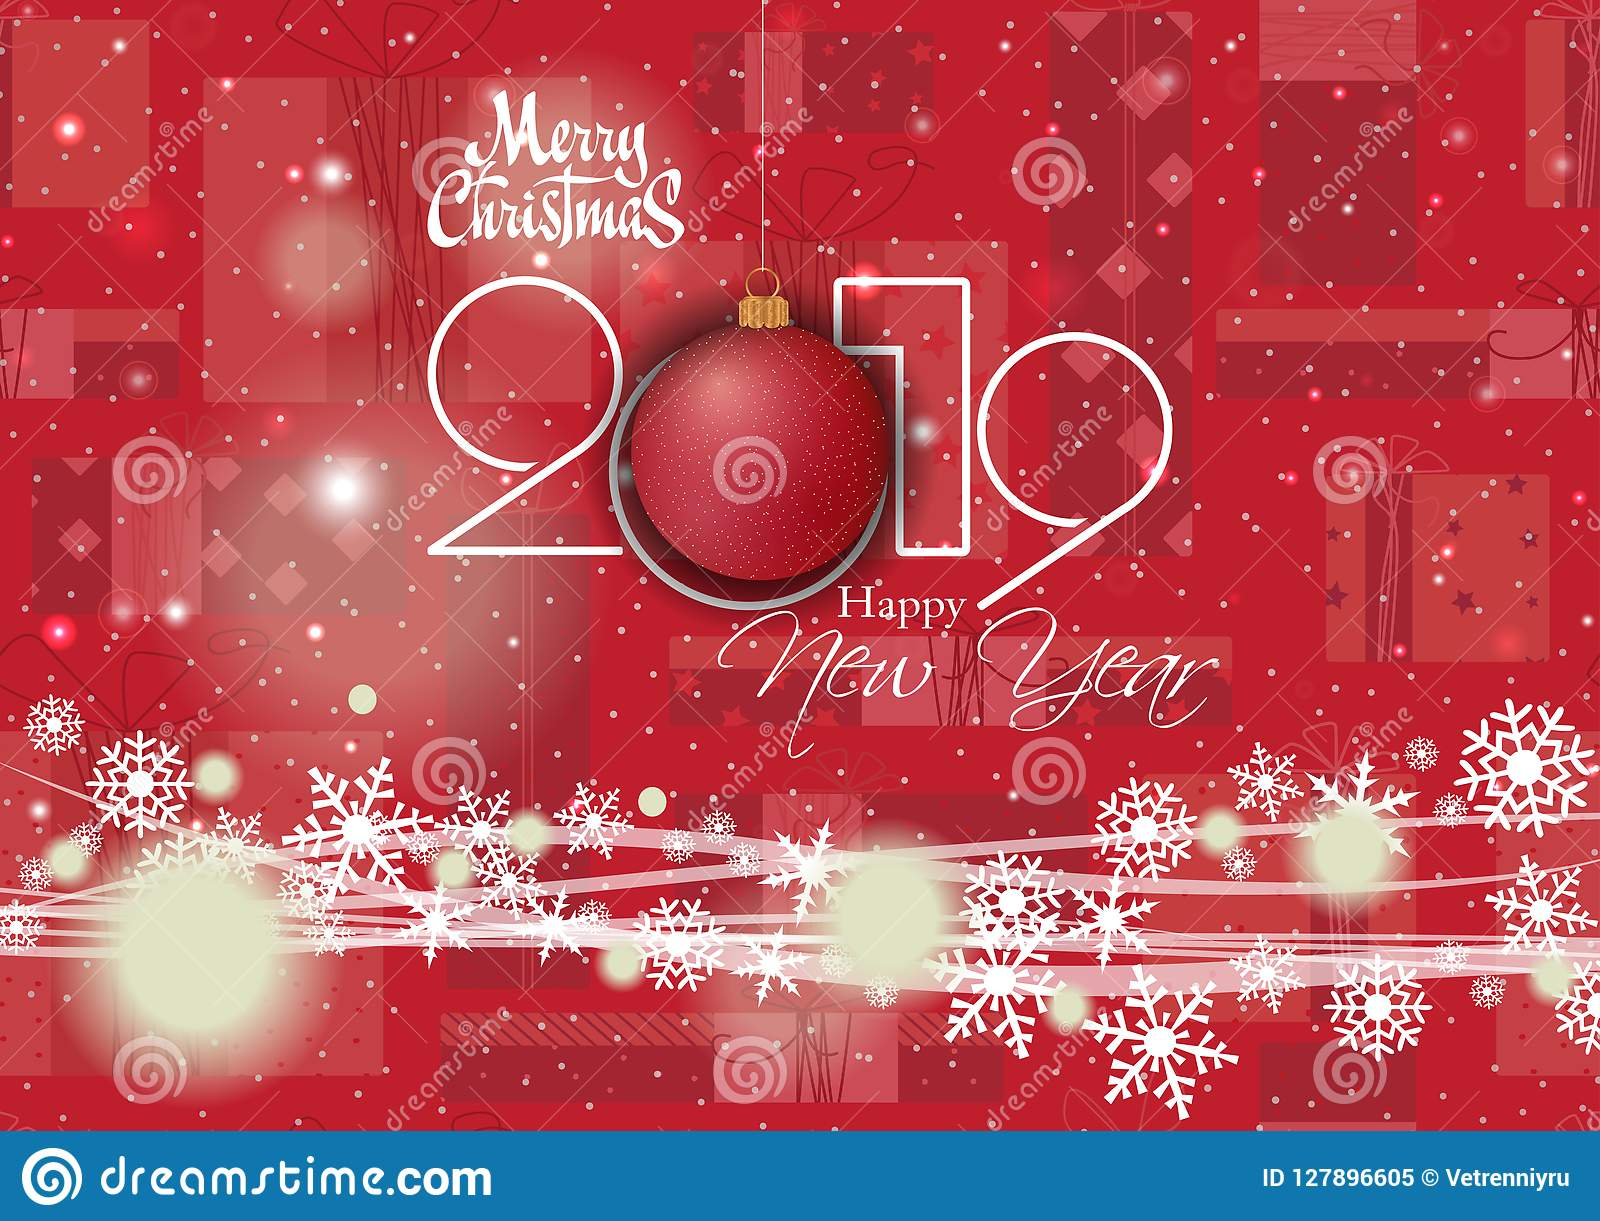 Happy New Year 2019 And Merry Christmas Card For Your Design